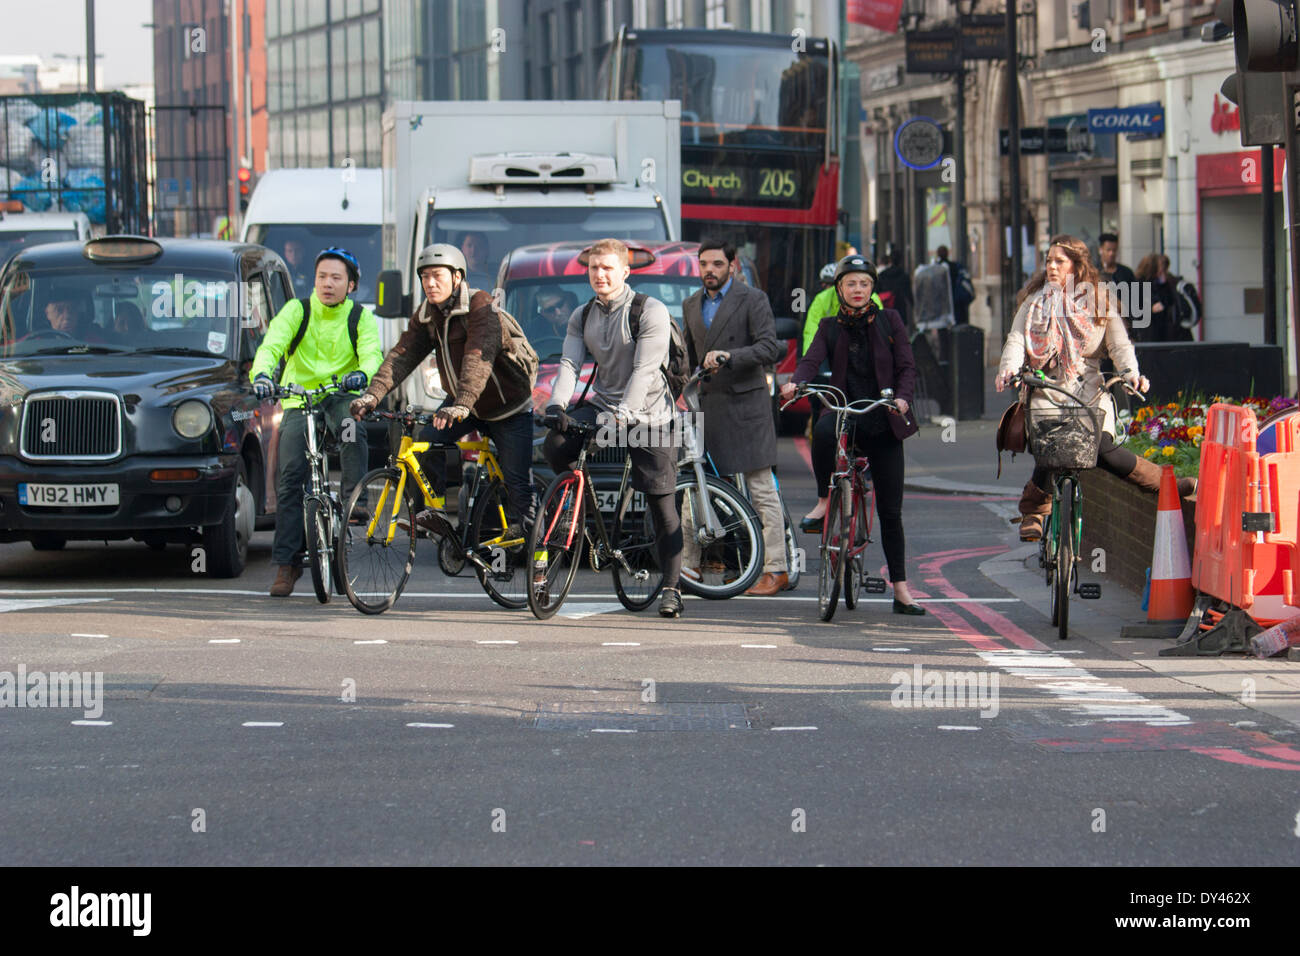 London cyclists mingle with traffic at stop lights during morning rush hour - Stock Image